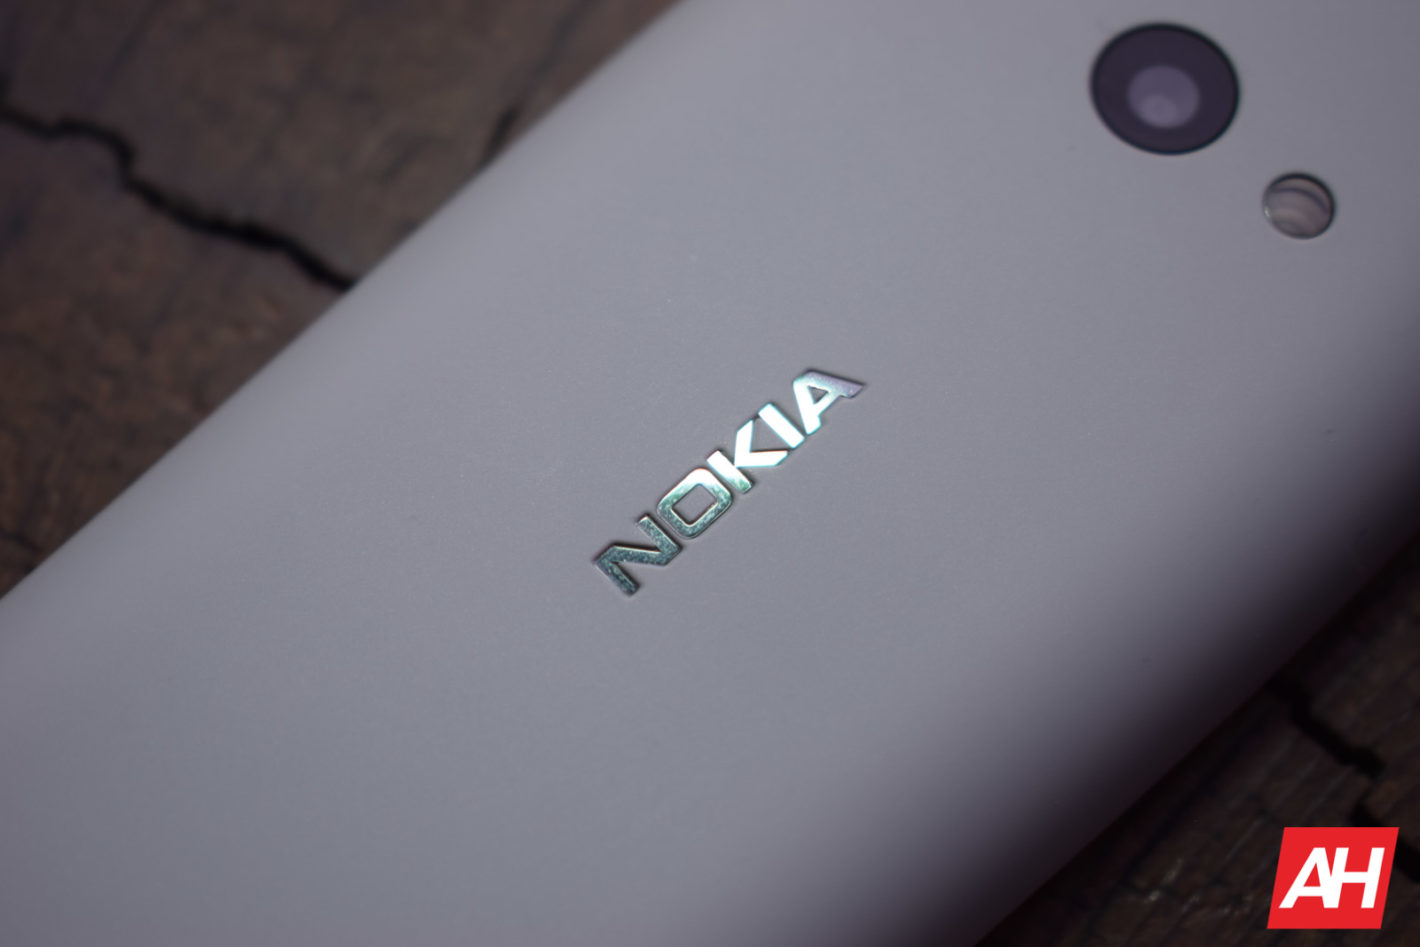 Sforum - Latest technology information page smartphone-Nokia-1 To enhance security, HMD Global decided to transfer all Nokia smartphone data to Finland.